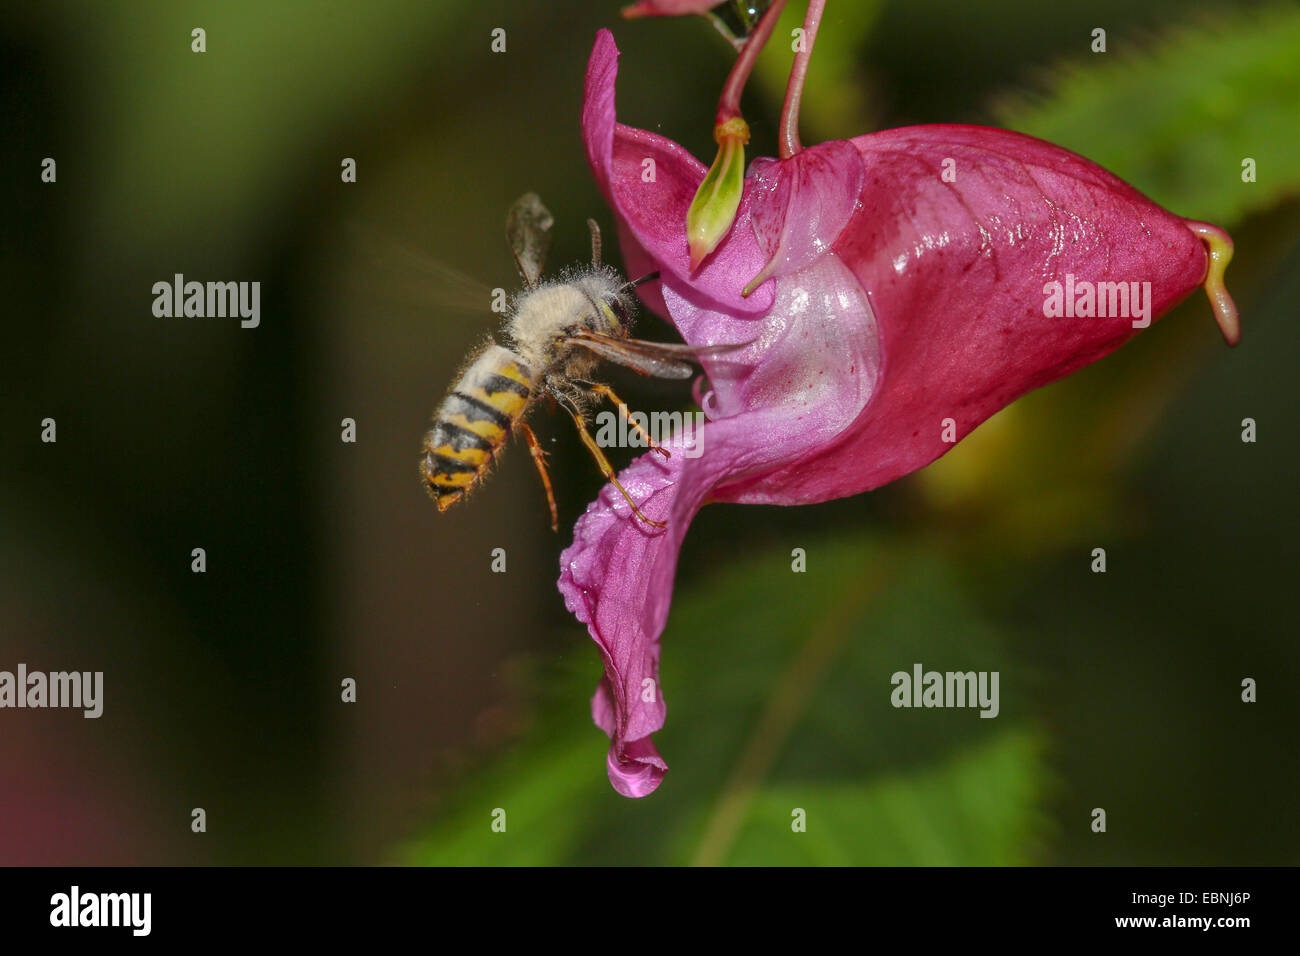 common wasp (Vespula vulgaris, Paravespula vulgaris), infected with mould, suckling nectar an a touch-me-not flower, - Stock Image